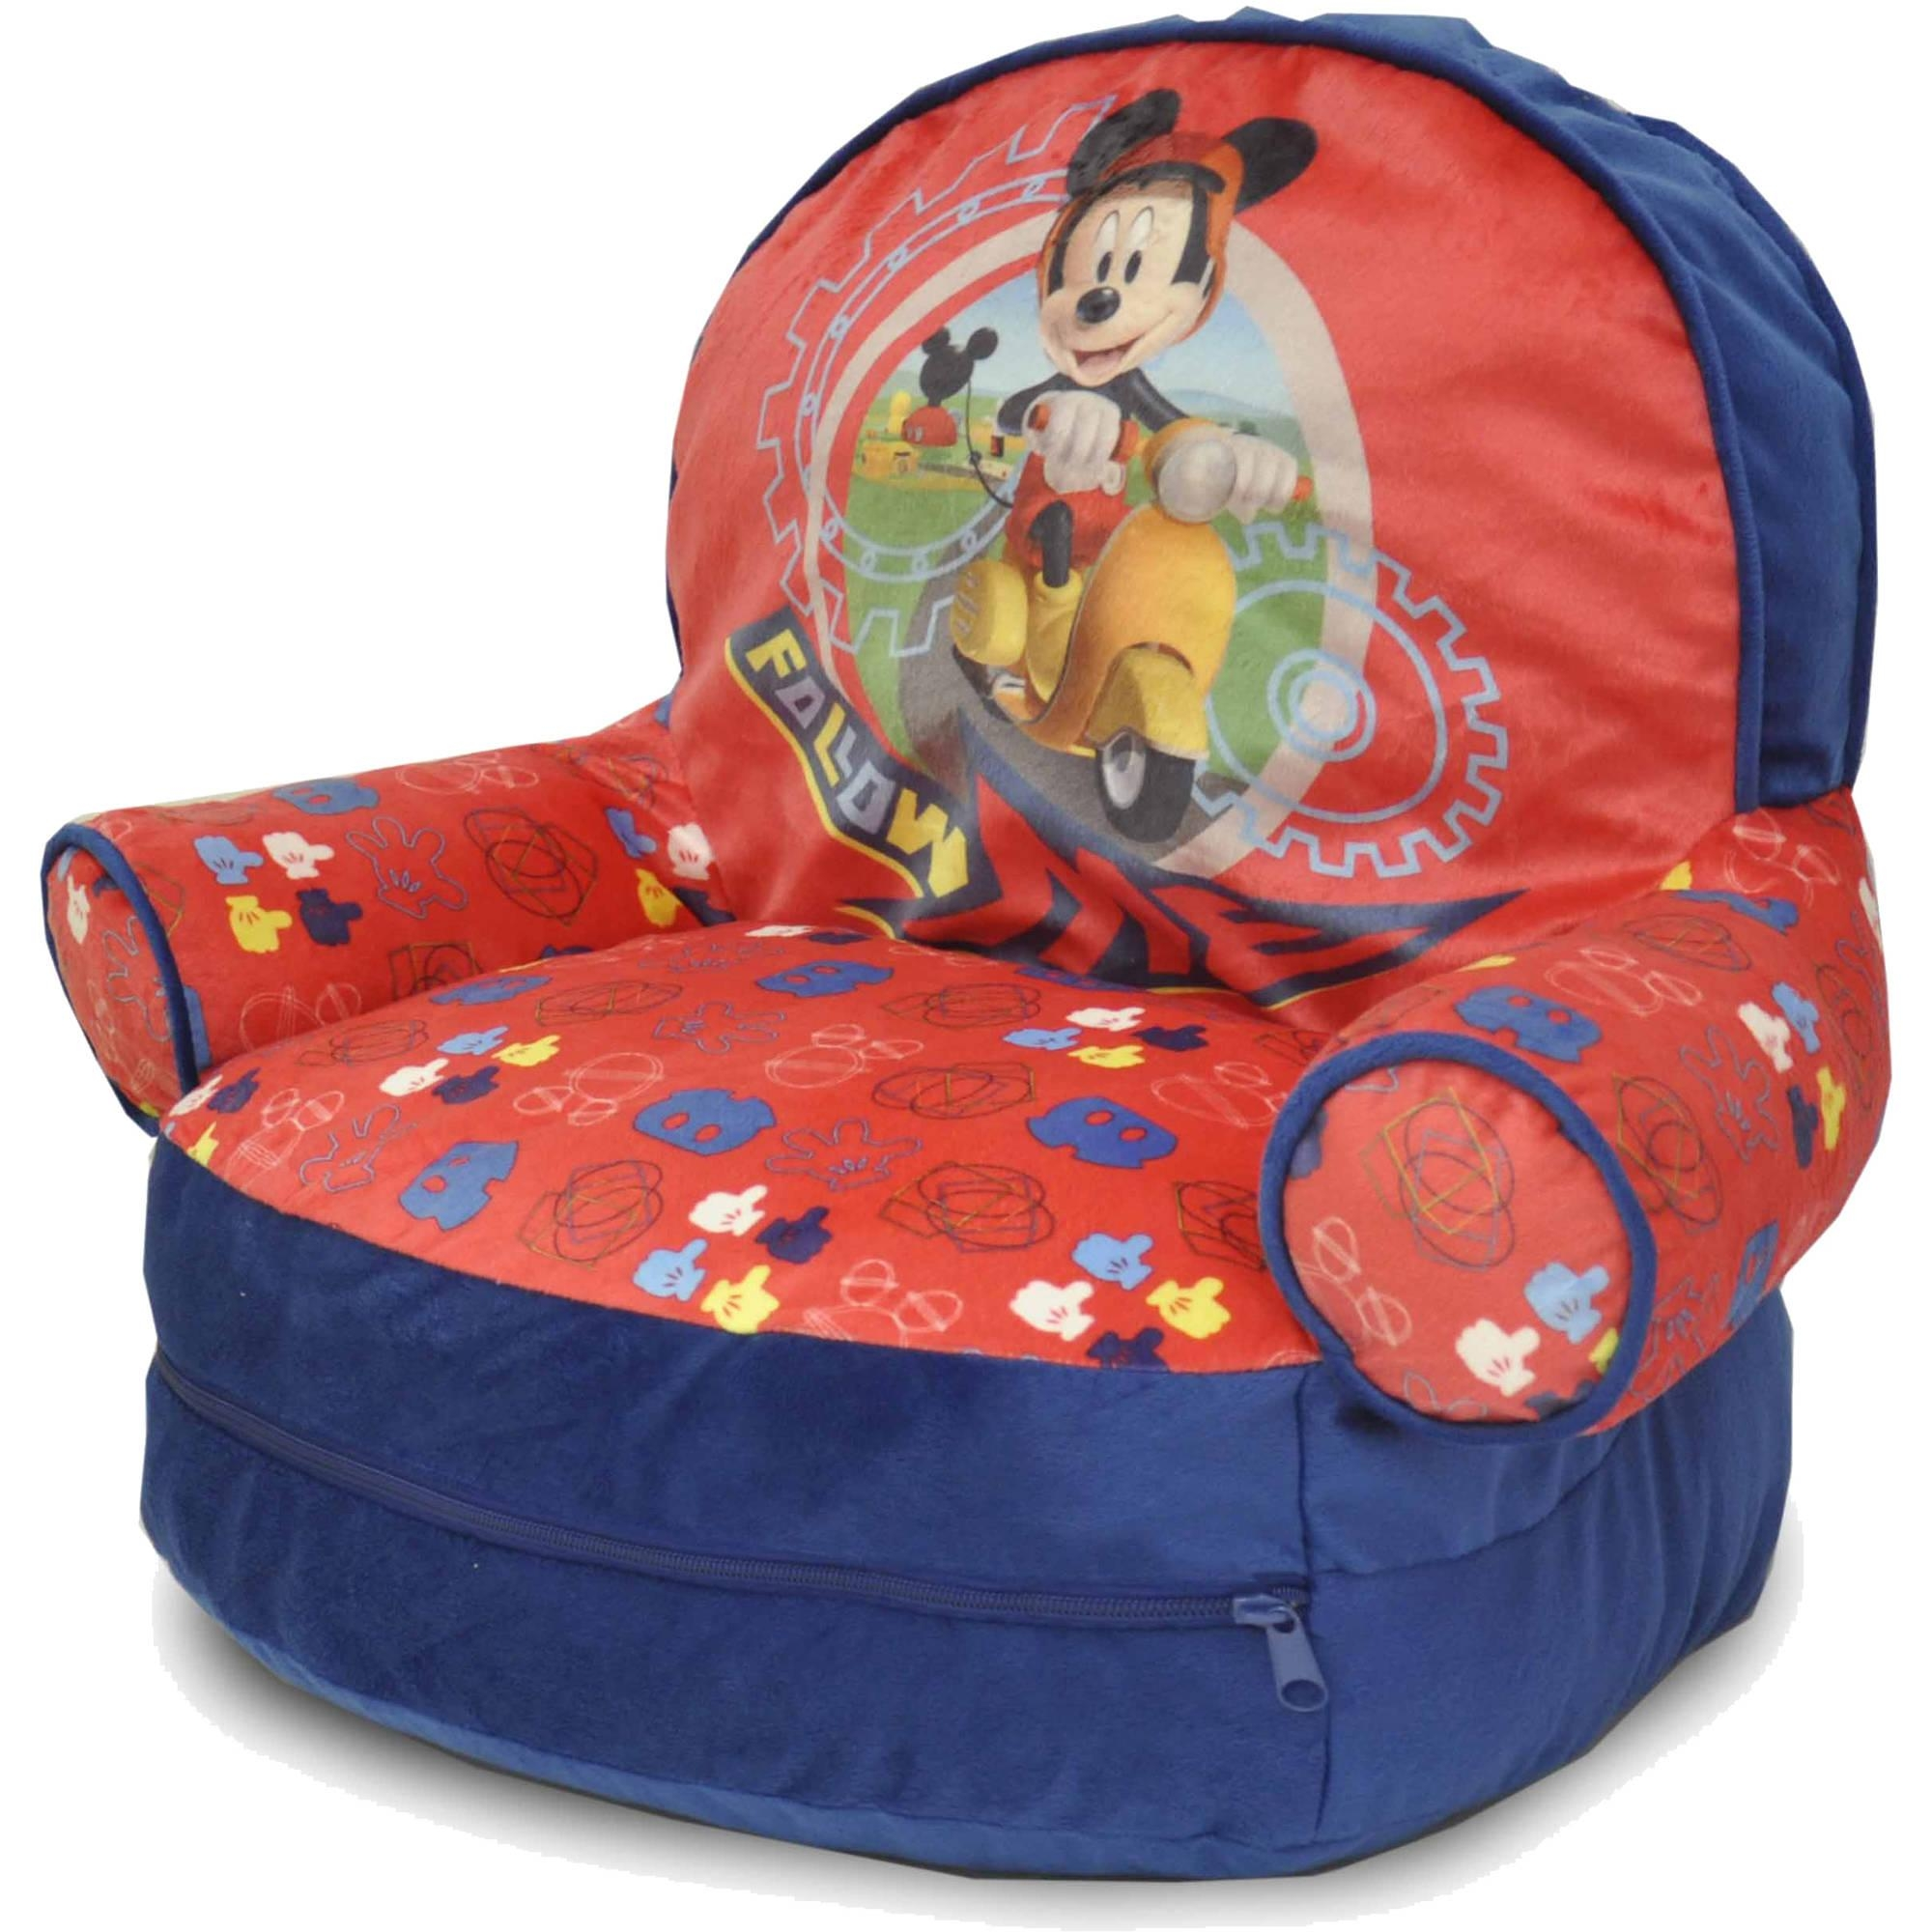 Minnie Mouse Furniture With Disney Sofa Chairs (View 18 of 20)